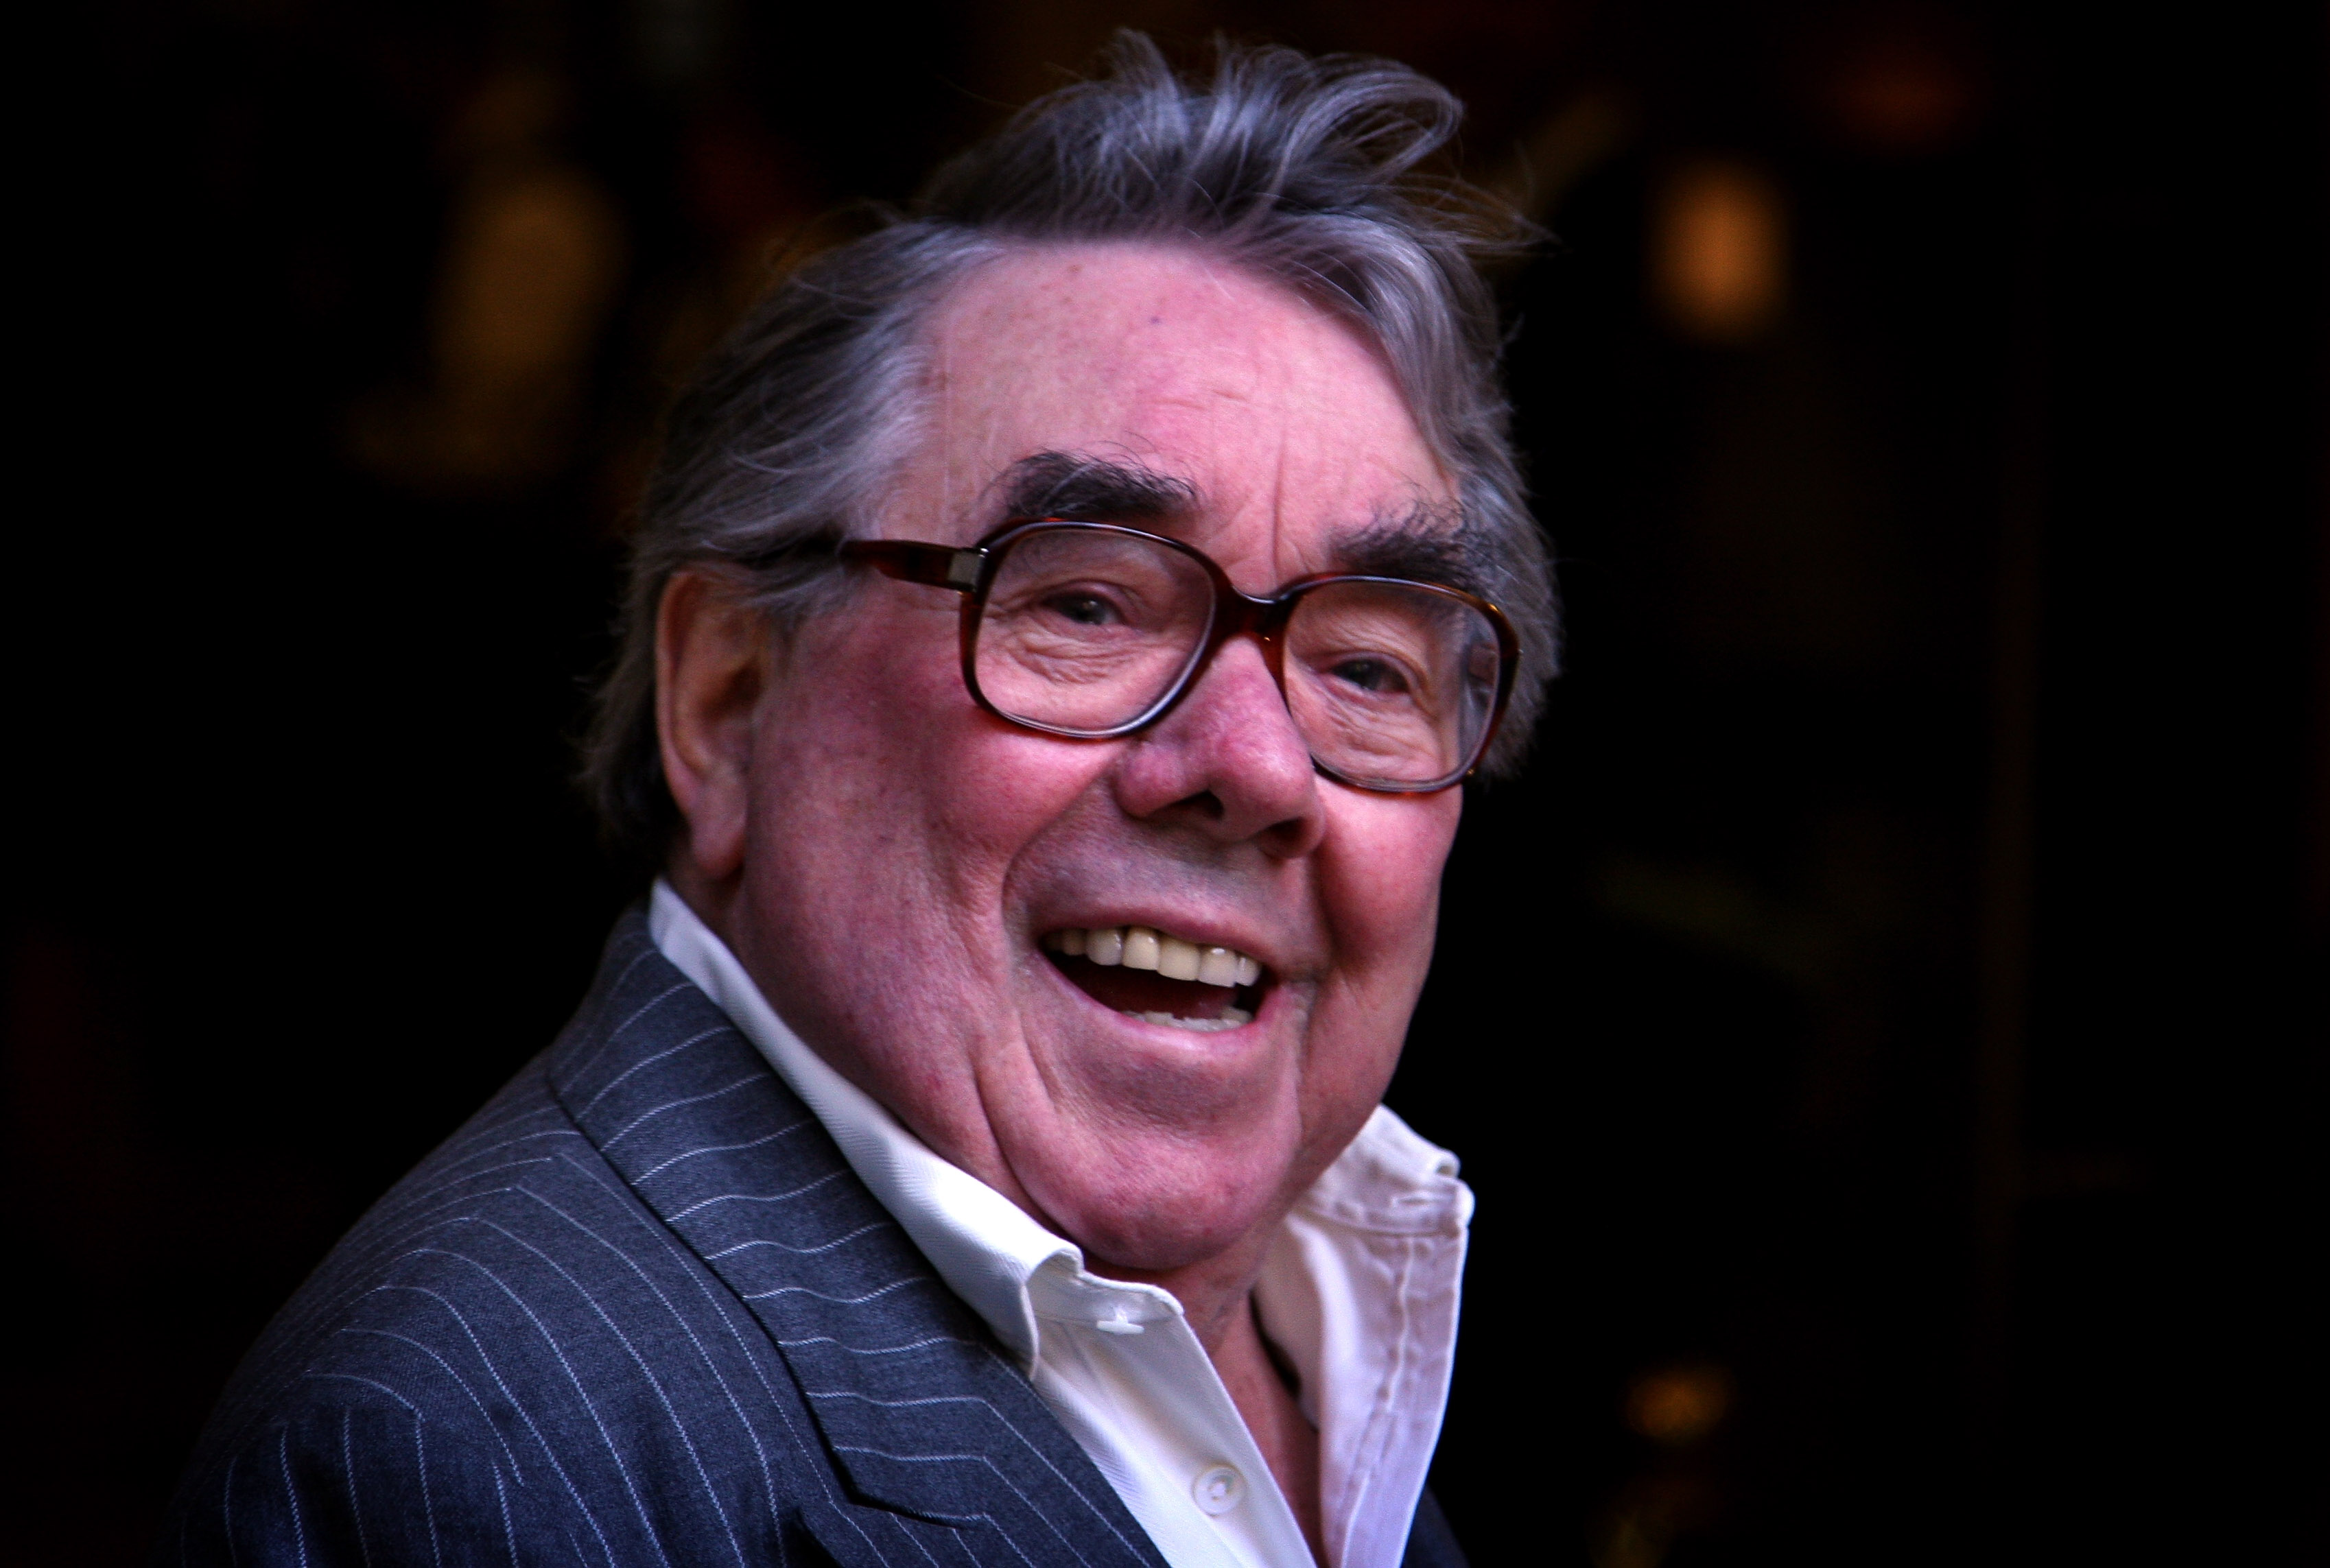 Jack Whitehall, Russell Crowe and Jeremy Corbyn pay tribute to late comedian Ronnie Corbett